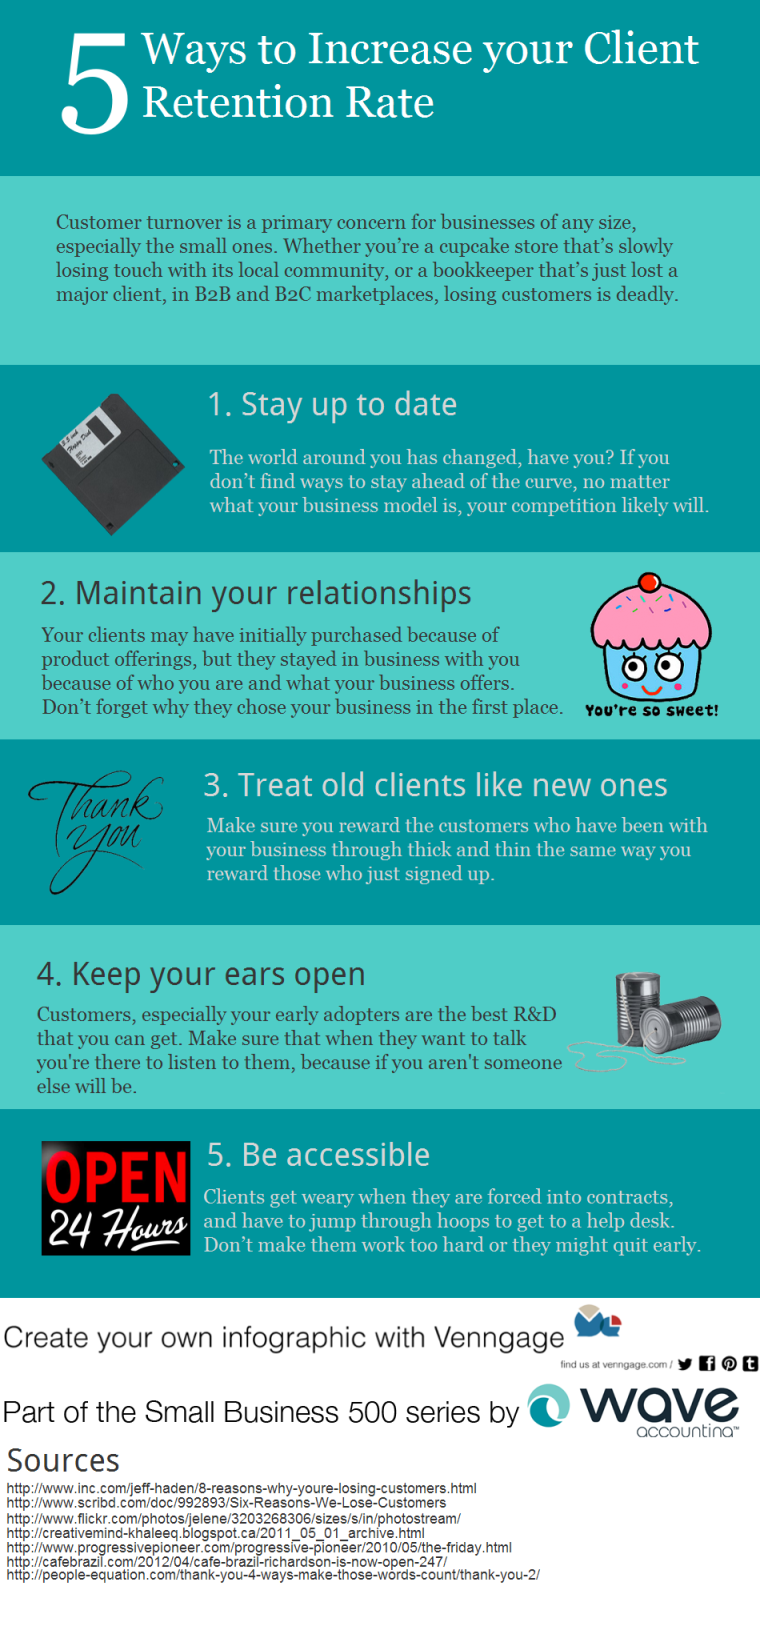 5 ways to increase your client retention rate